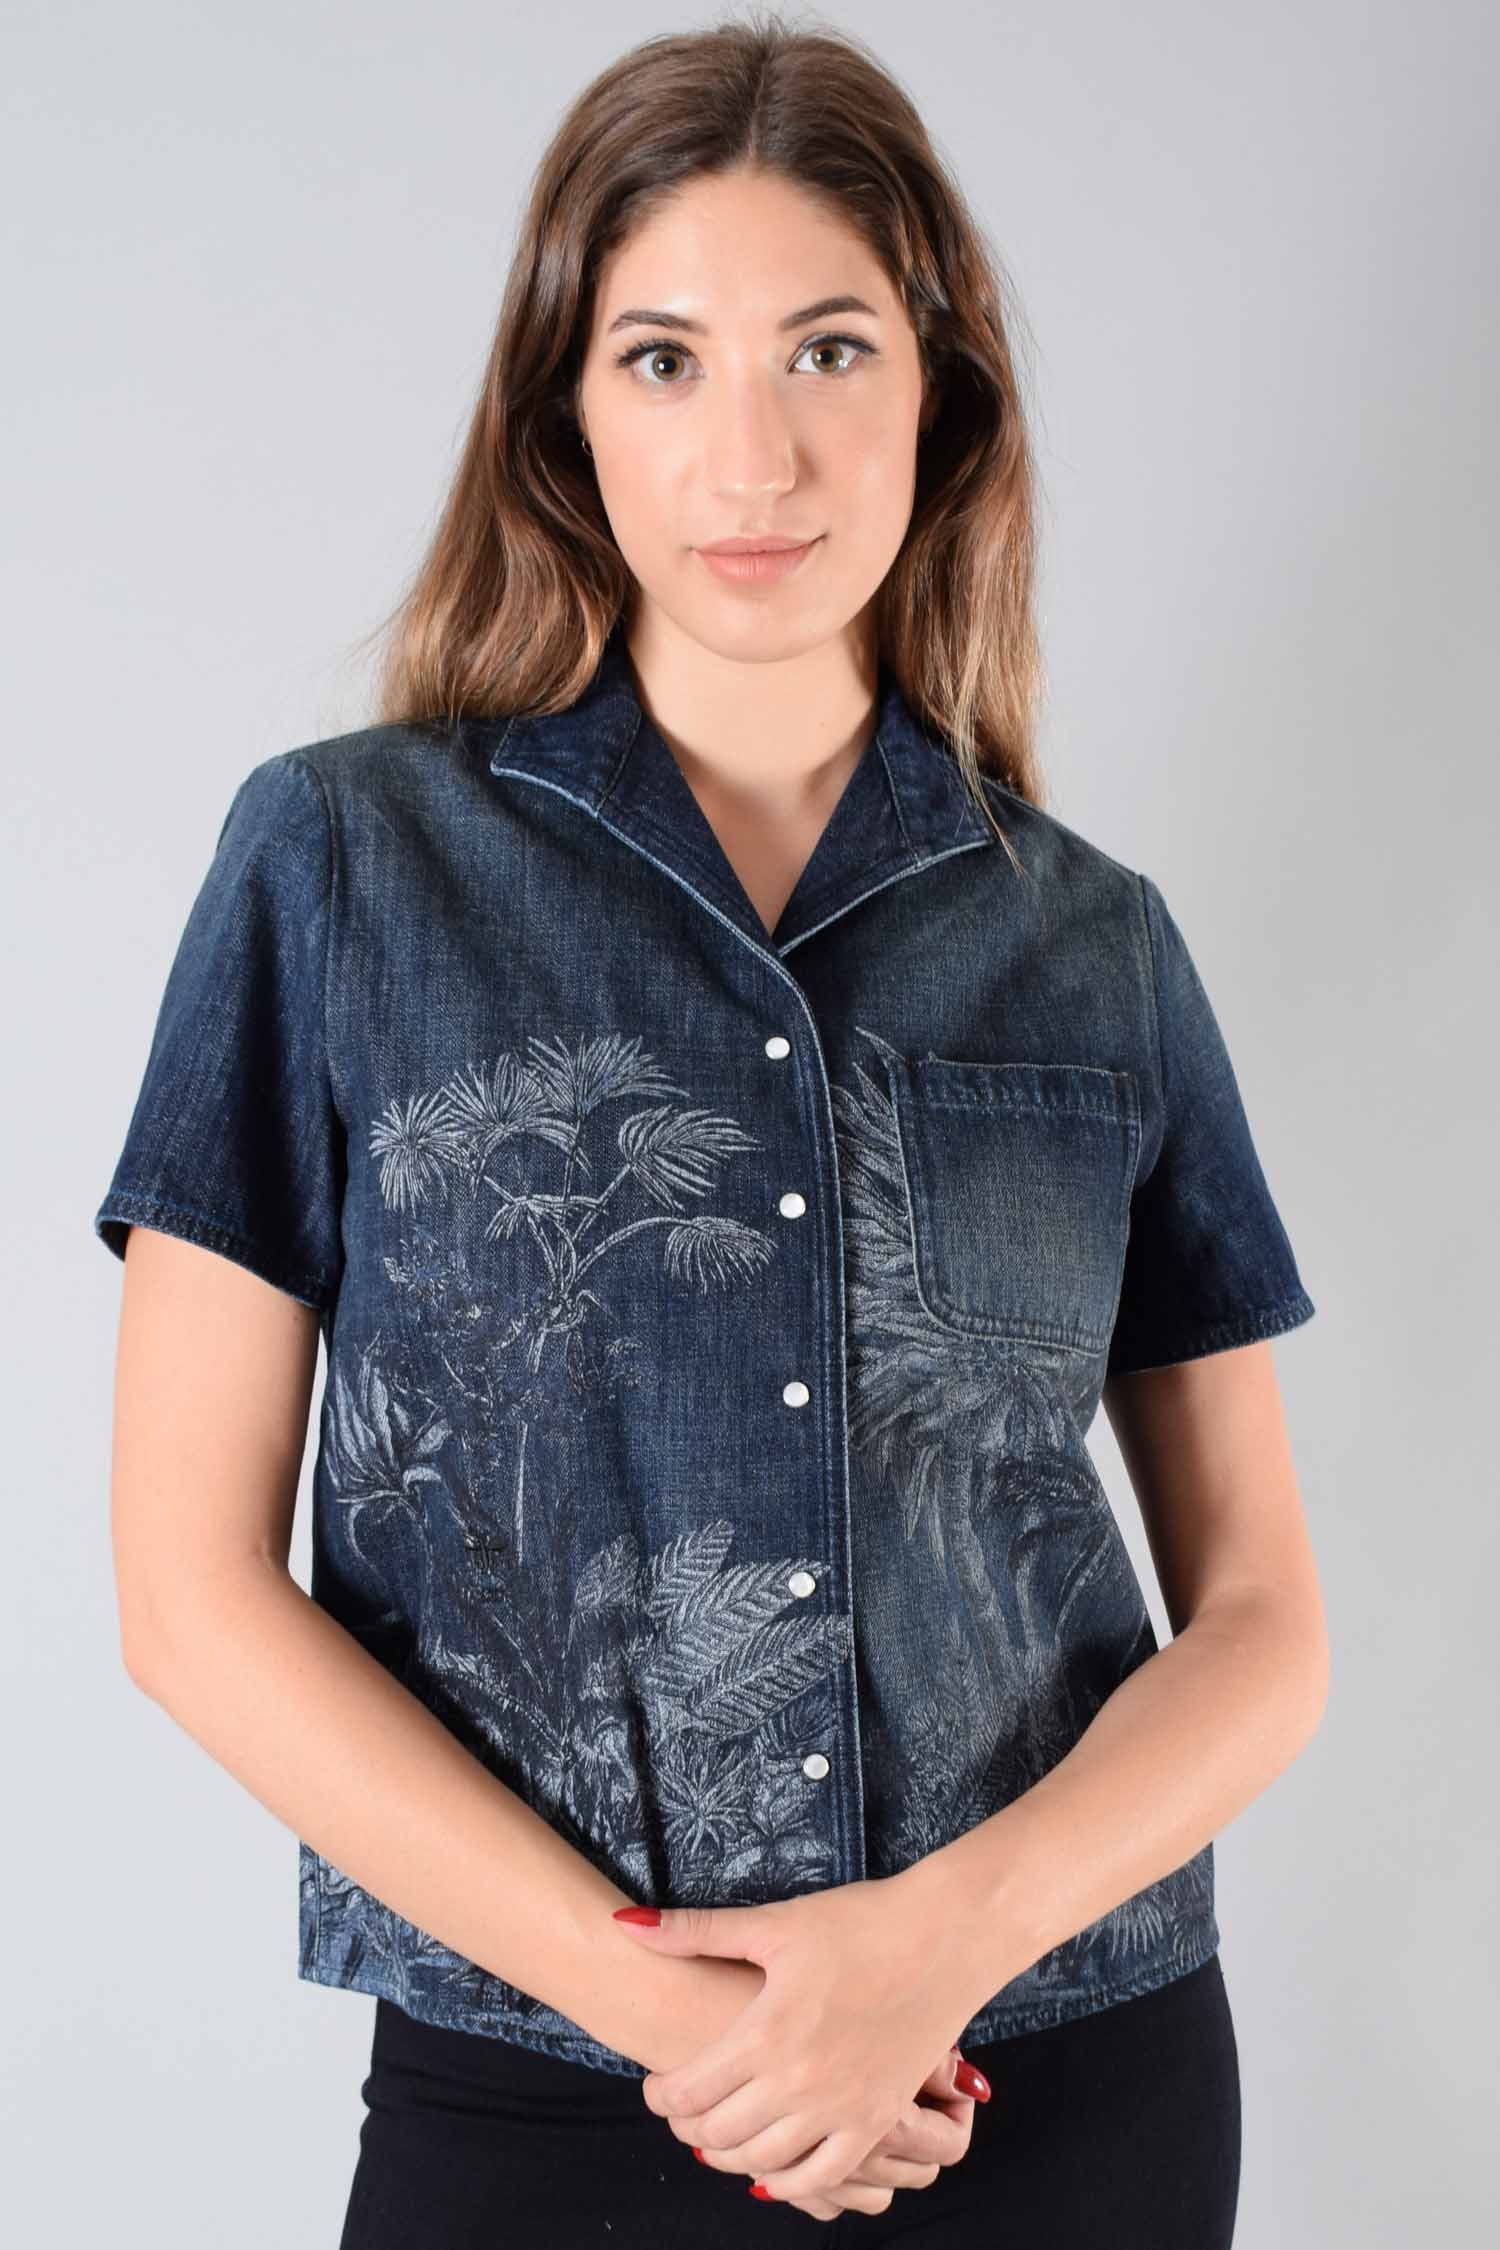 Christian Dior Dark Wash Denim S/S Button Up Size 6